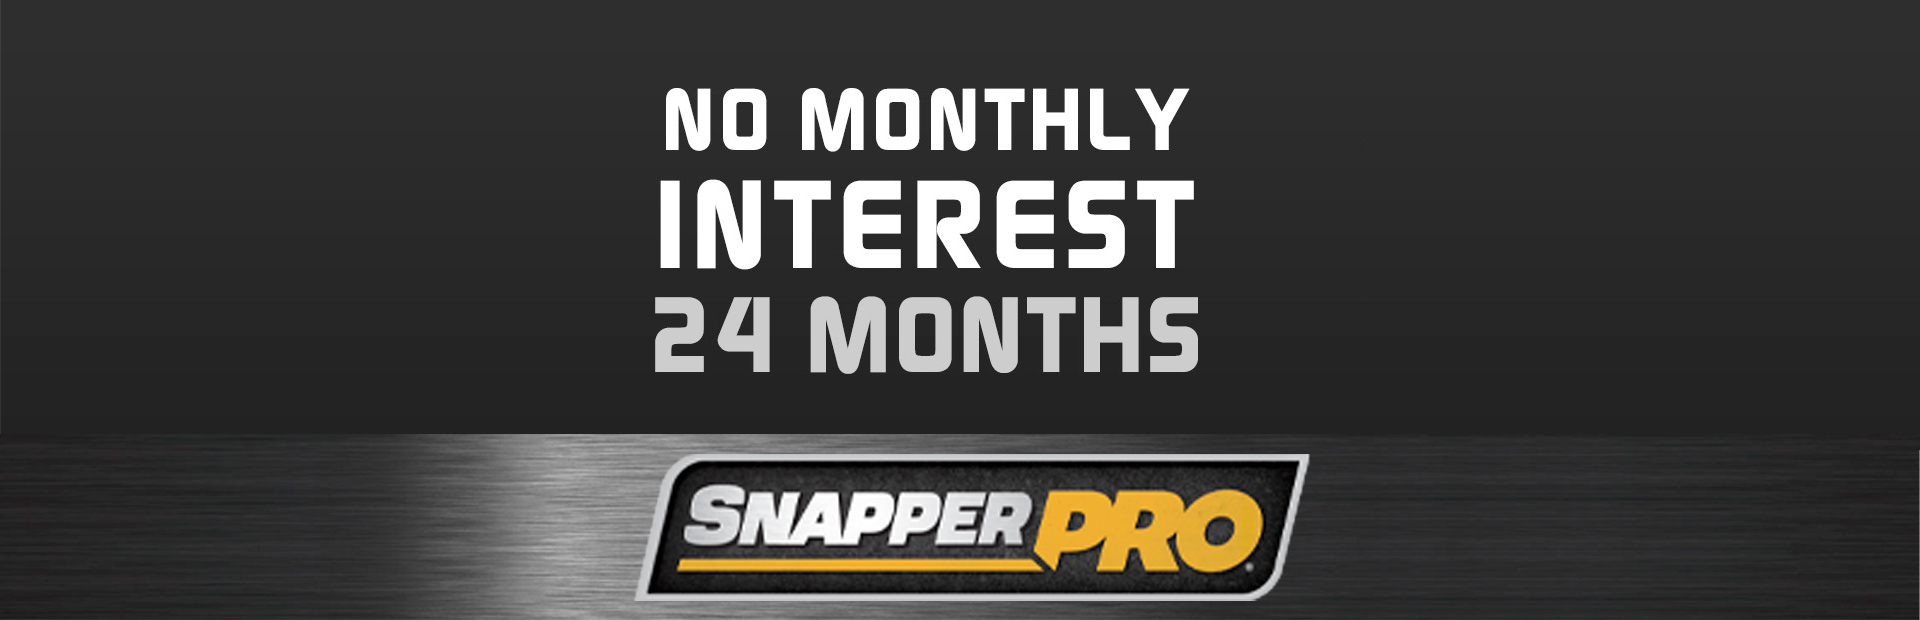 Snapper Pro: No Monthly Interest If Paid In Full Within 24 Mont